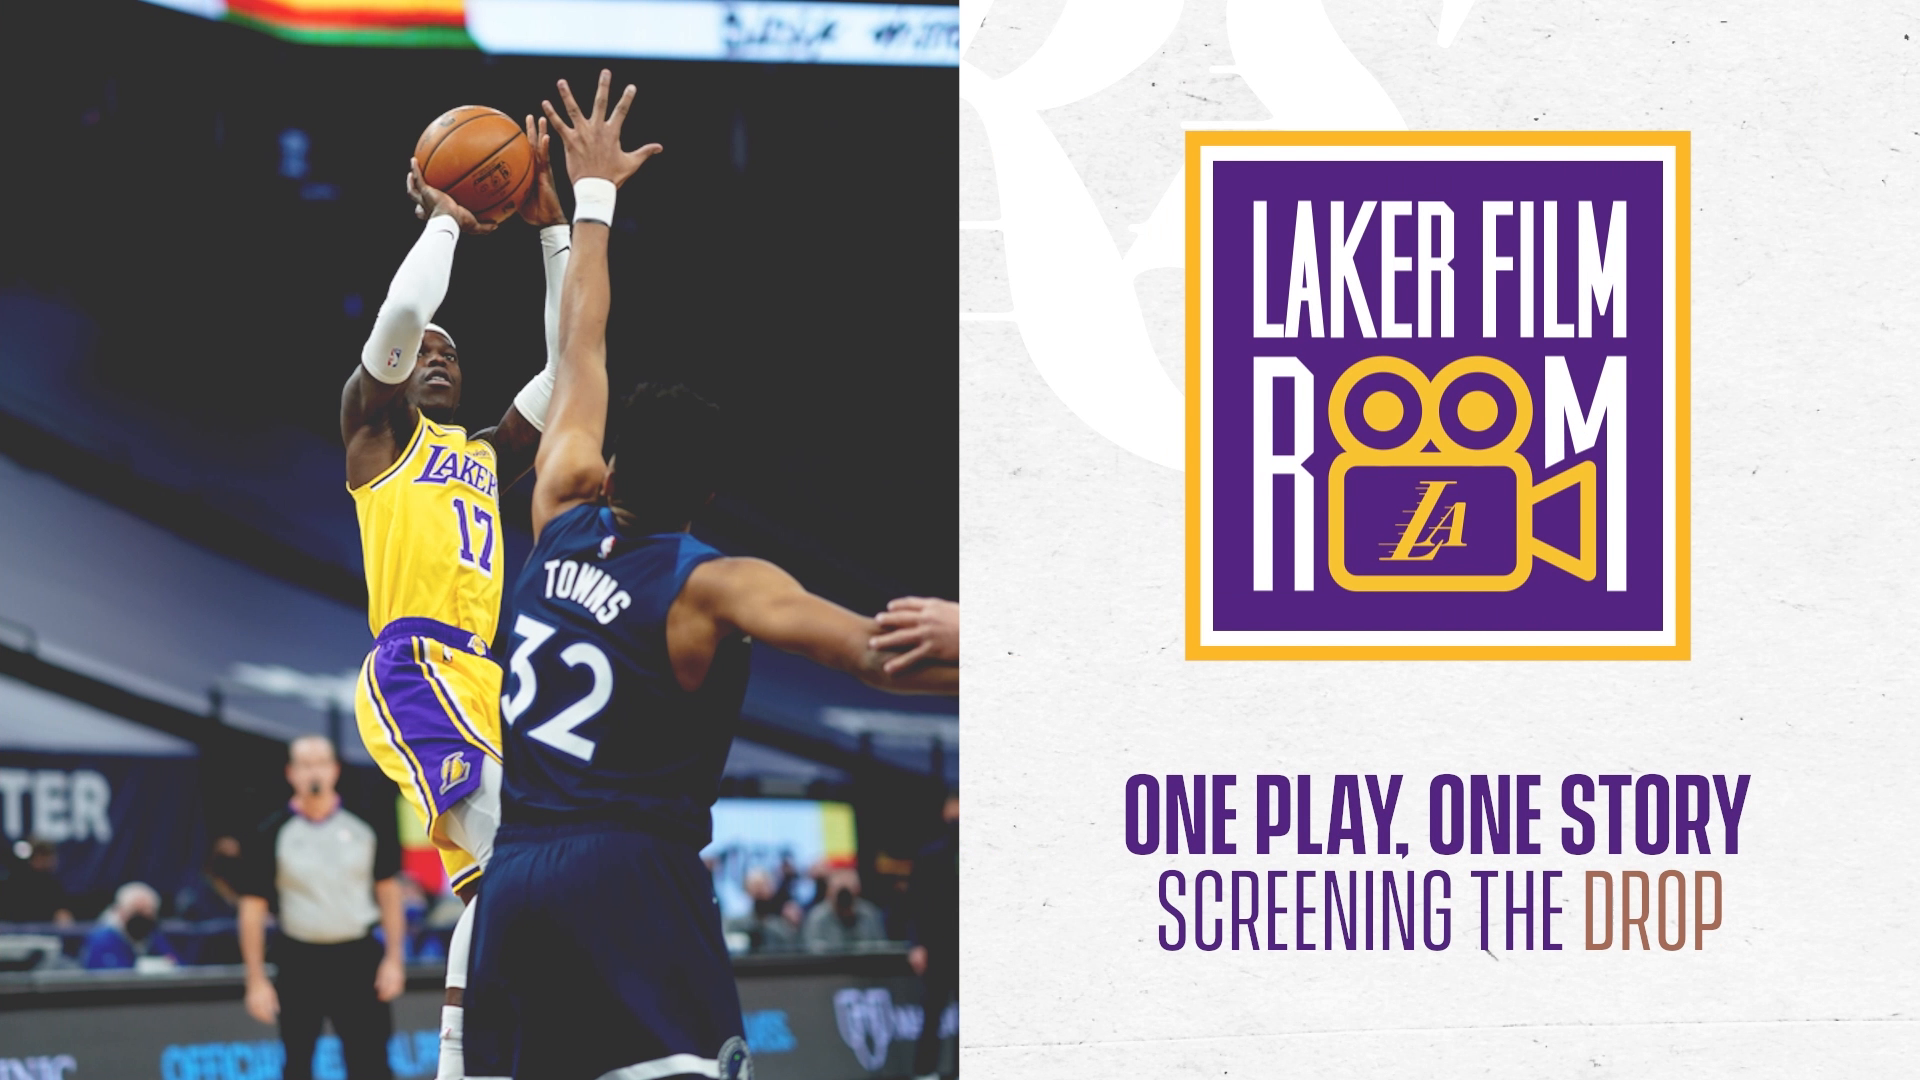 Laker Film Room: One Play, One Story - Screening the drop